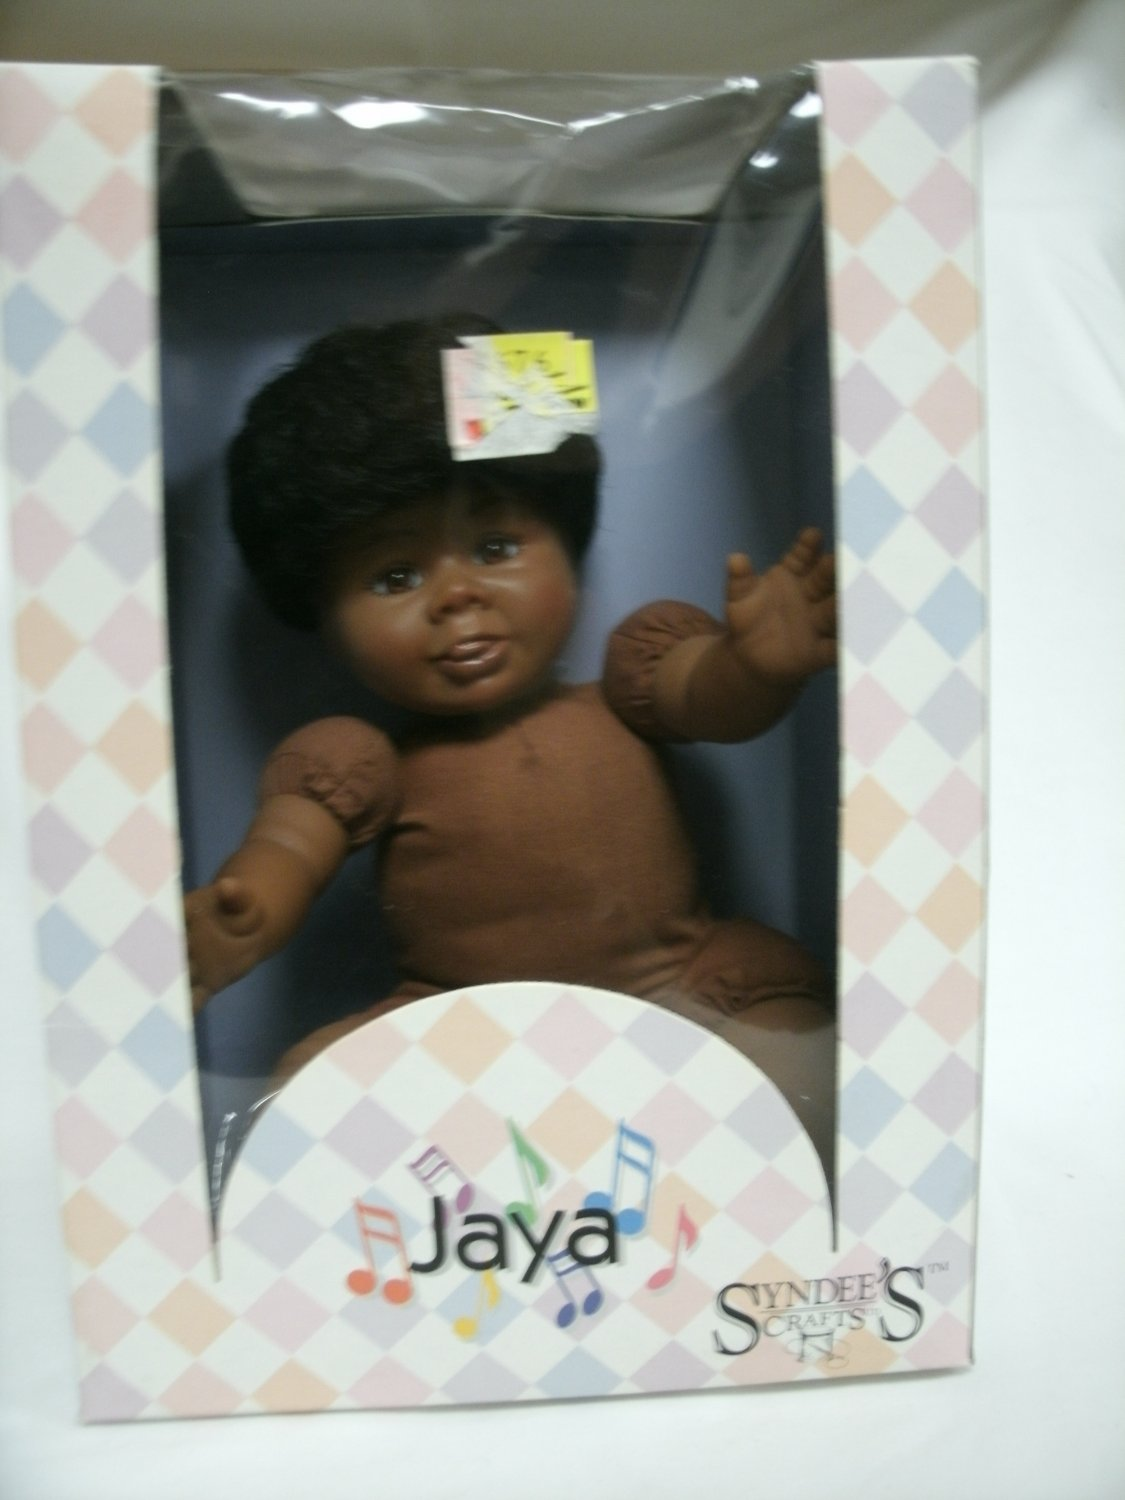 Syndee's Jaya Heirloom Craft Doll 7 1/2 Inches Sitting Cloth Body 1990's